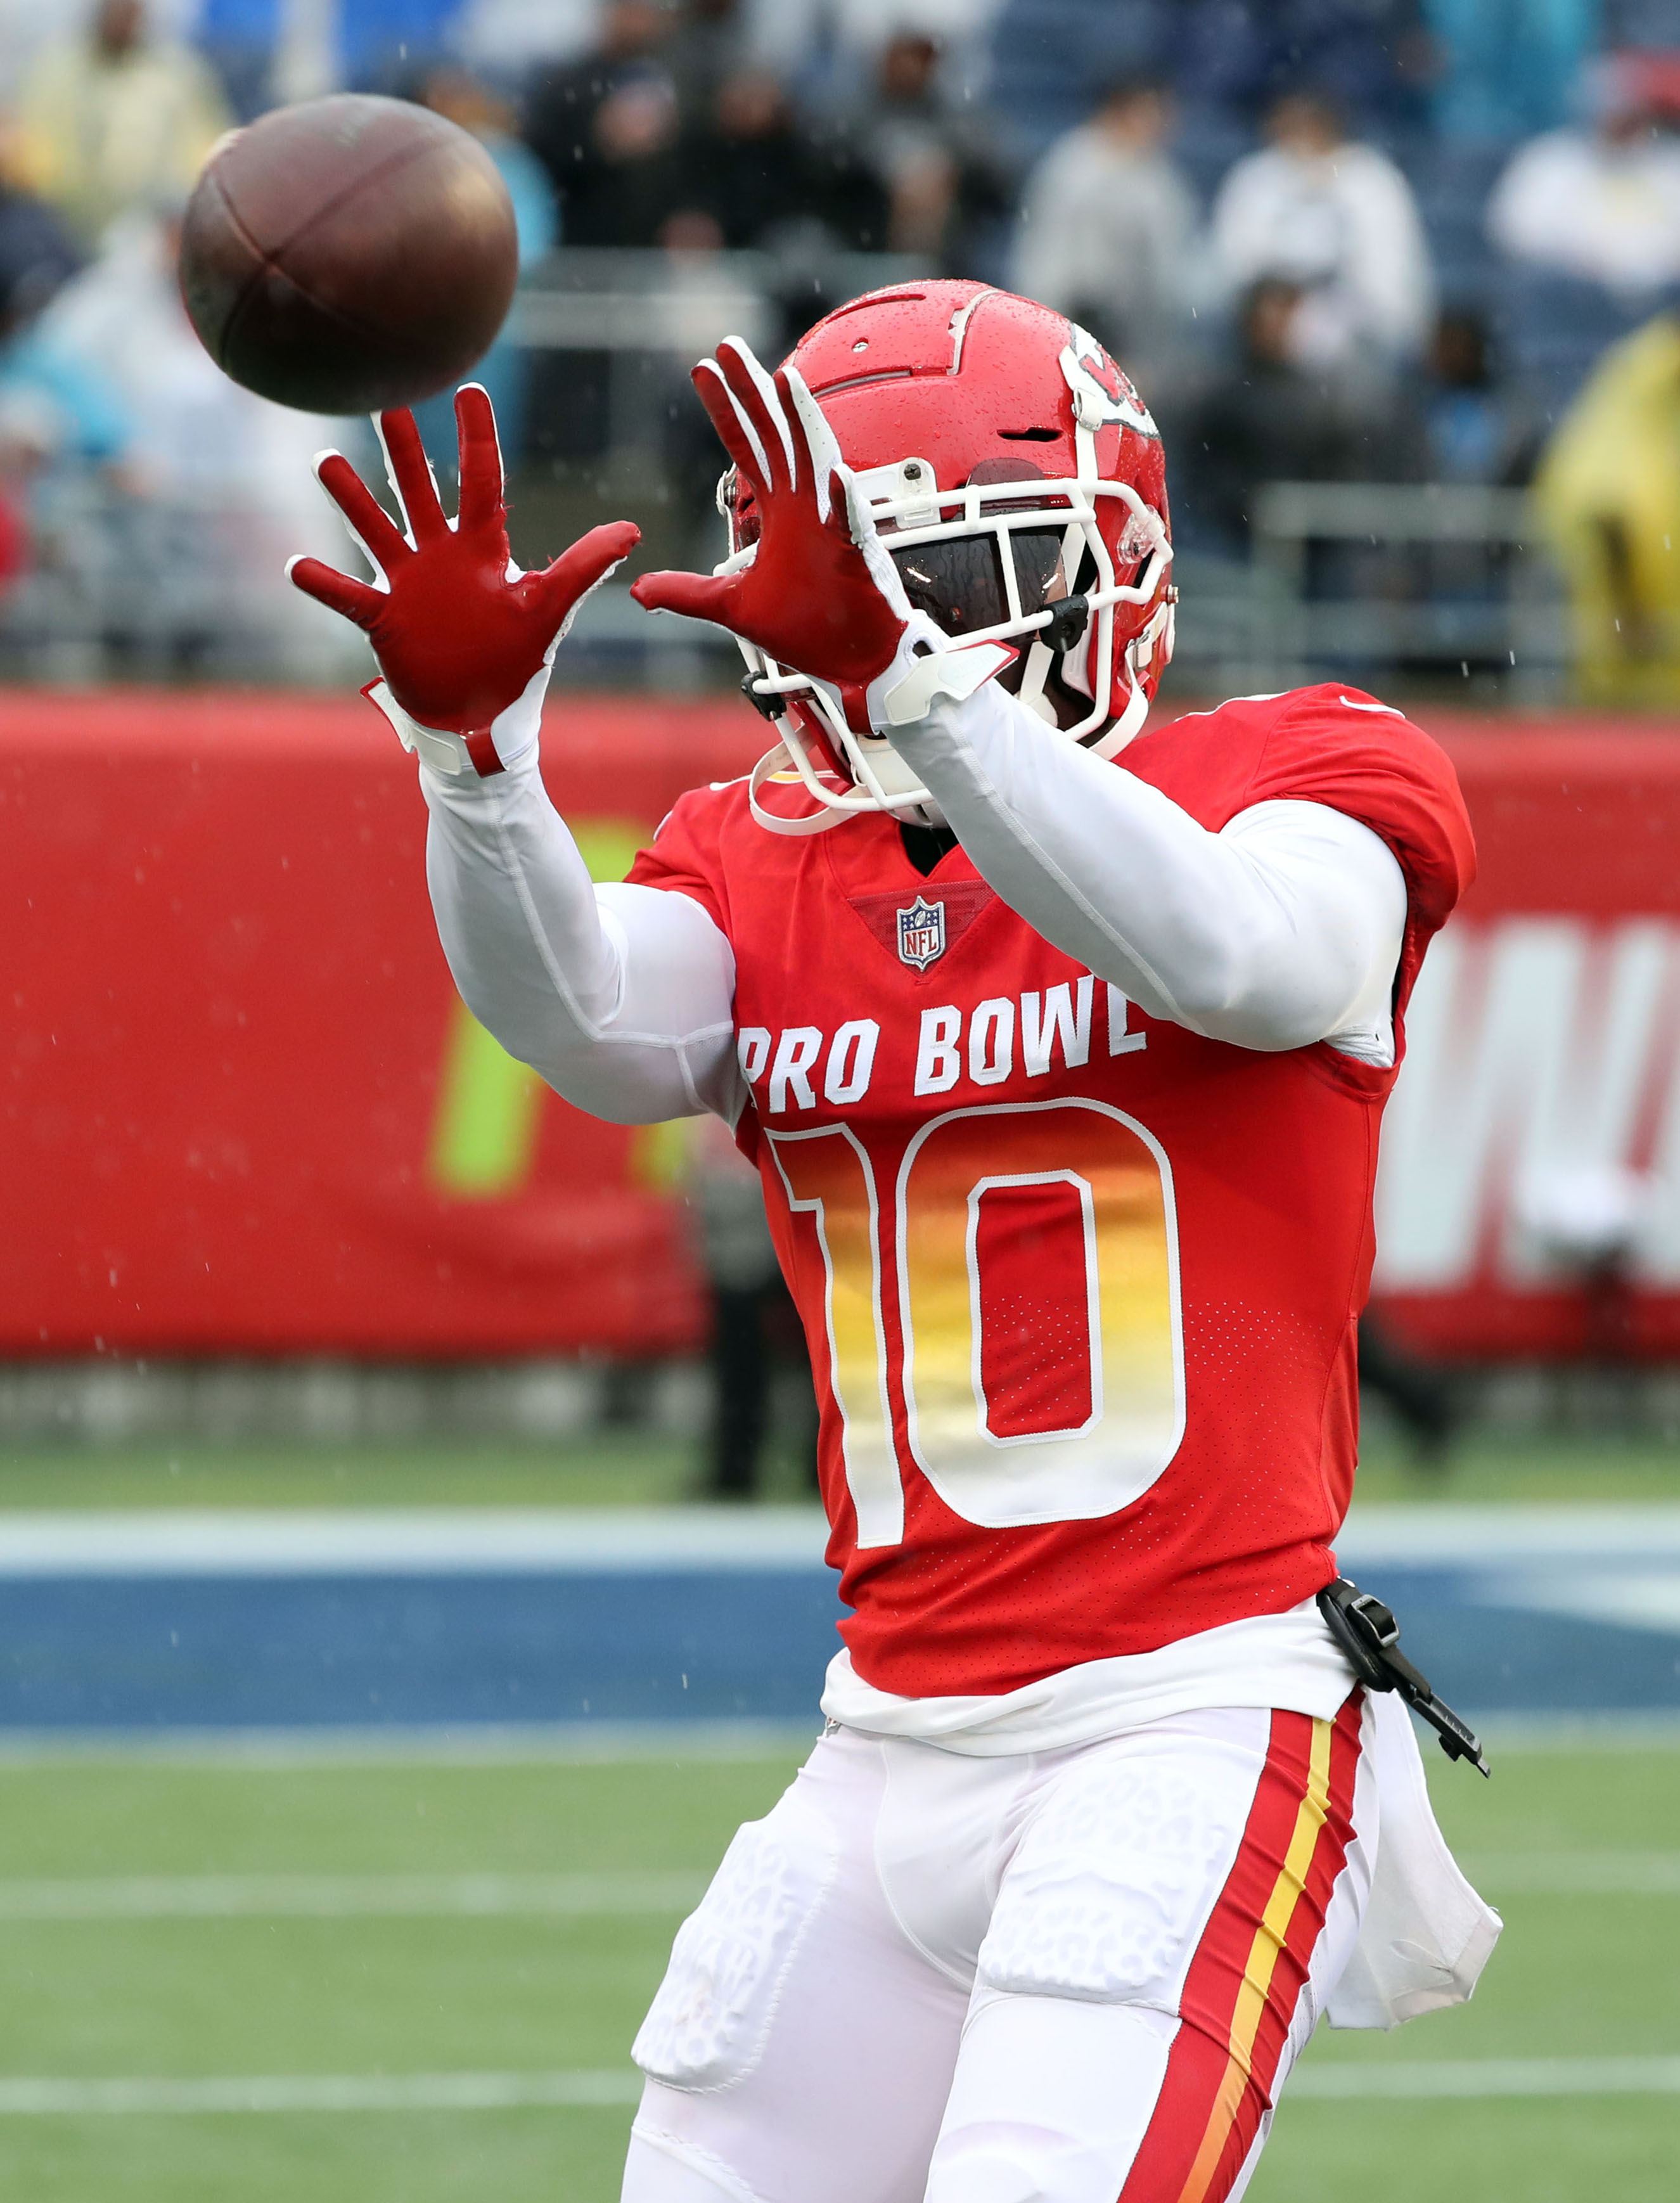 bf05330e ... alleged involvement in his son's broken arm, the prospect of Hill  having struck his child could pose a significant problem for the 25-year-old  wideout.